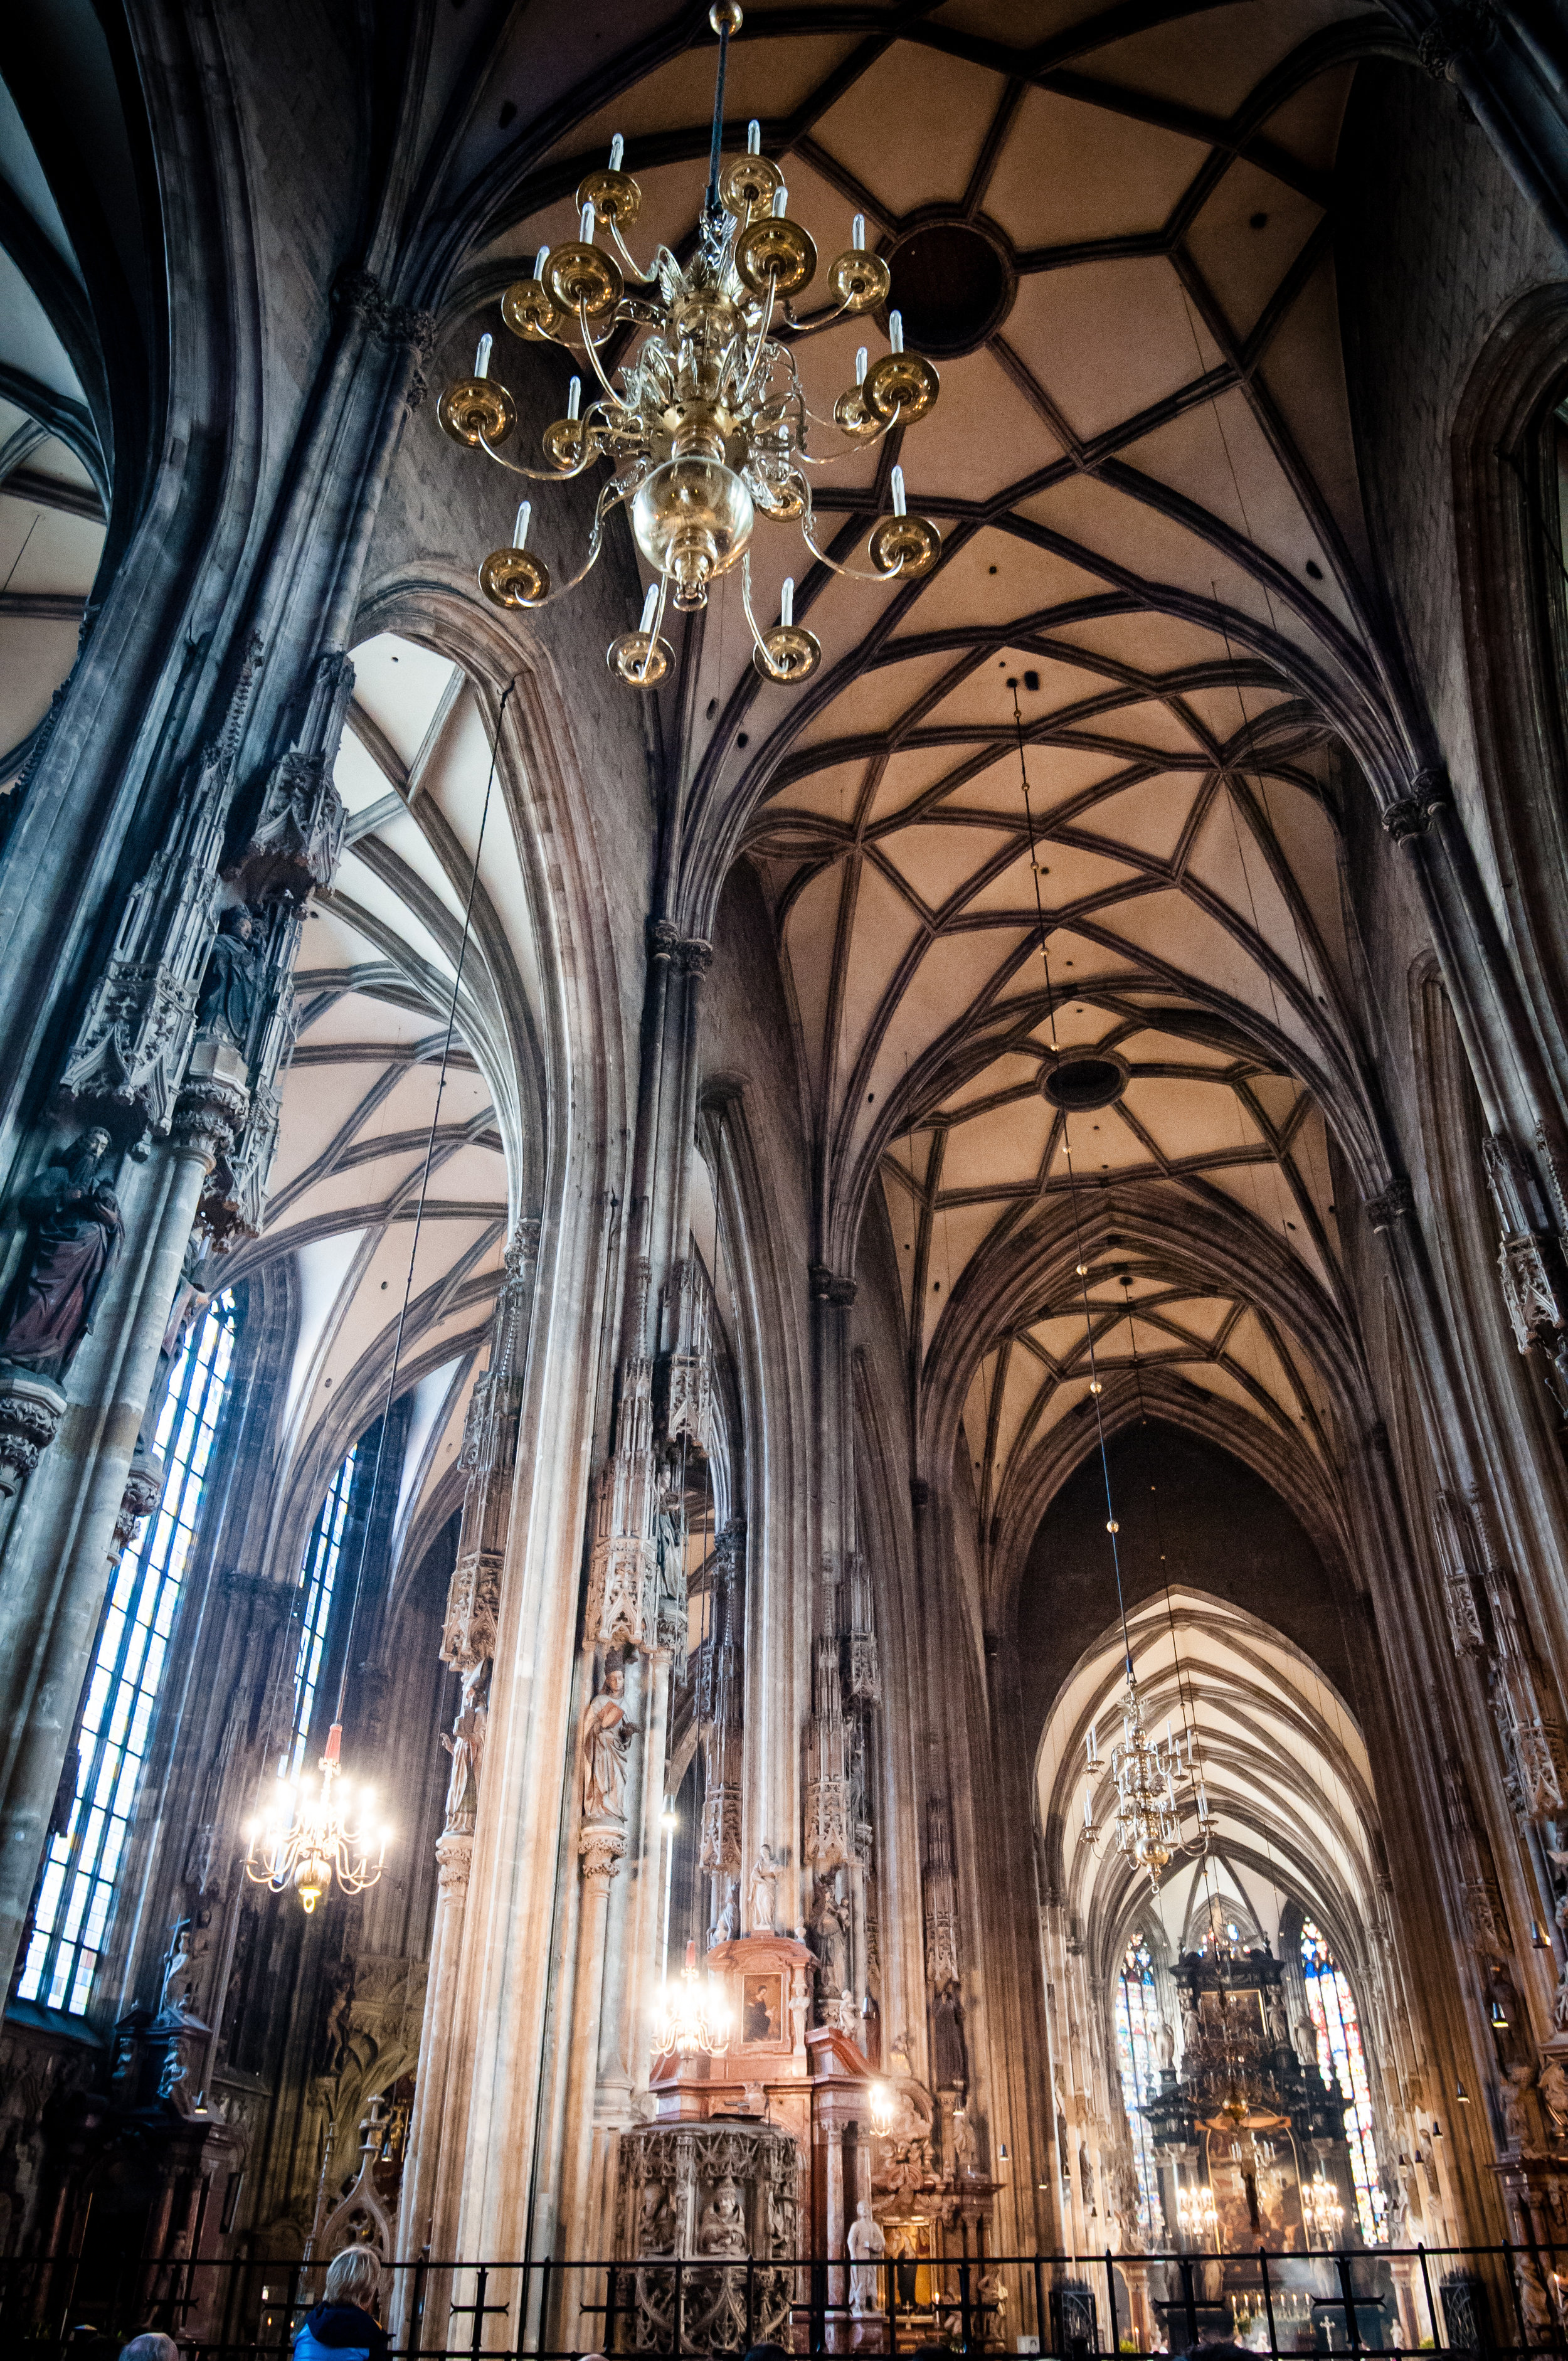 Ceiling Vault, St. Stephen's Cathedral, Vienna